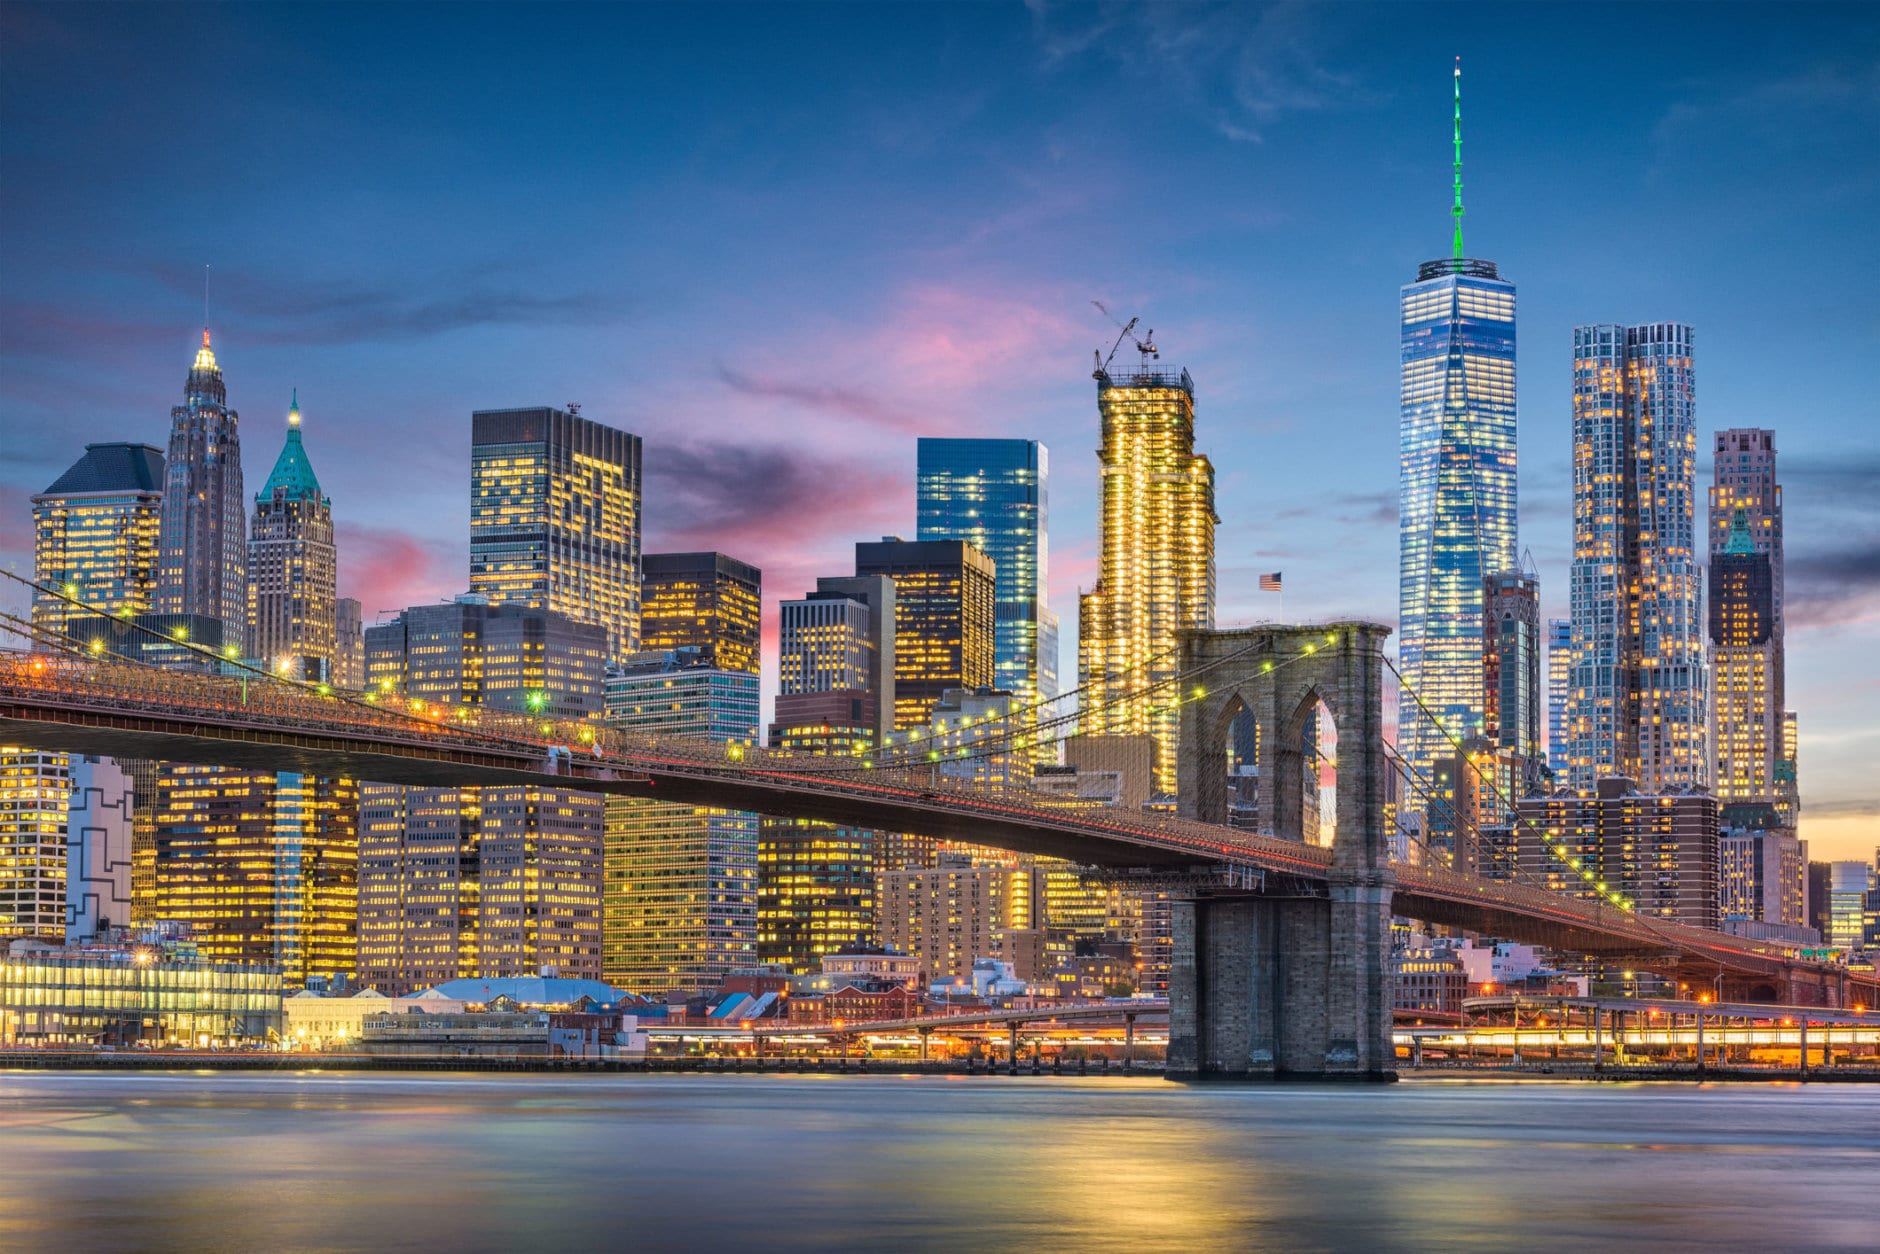 New York City, USA skyline on the East River with Brooklyn Bridge at dusk. (Getty Images/iStockphoto/Sean Pavone)